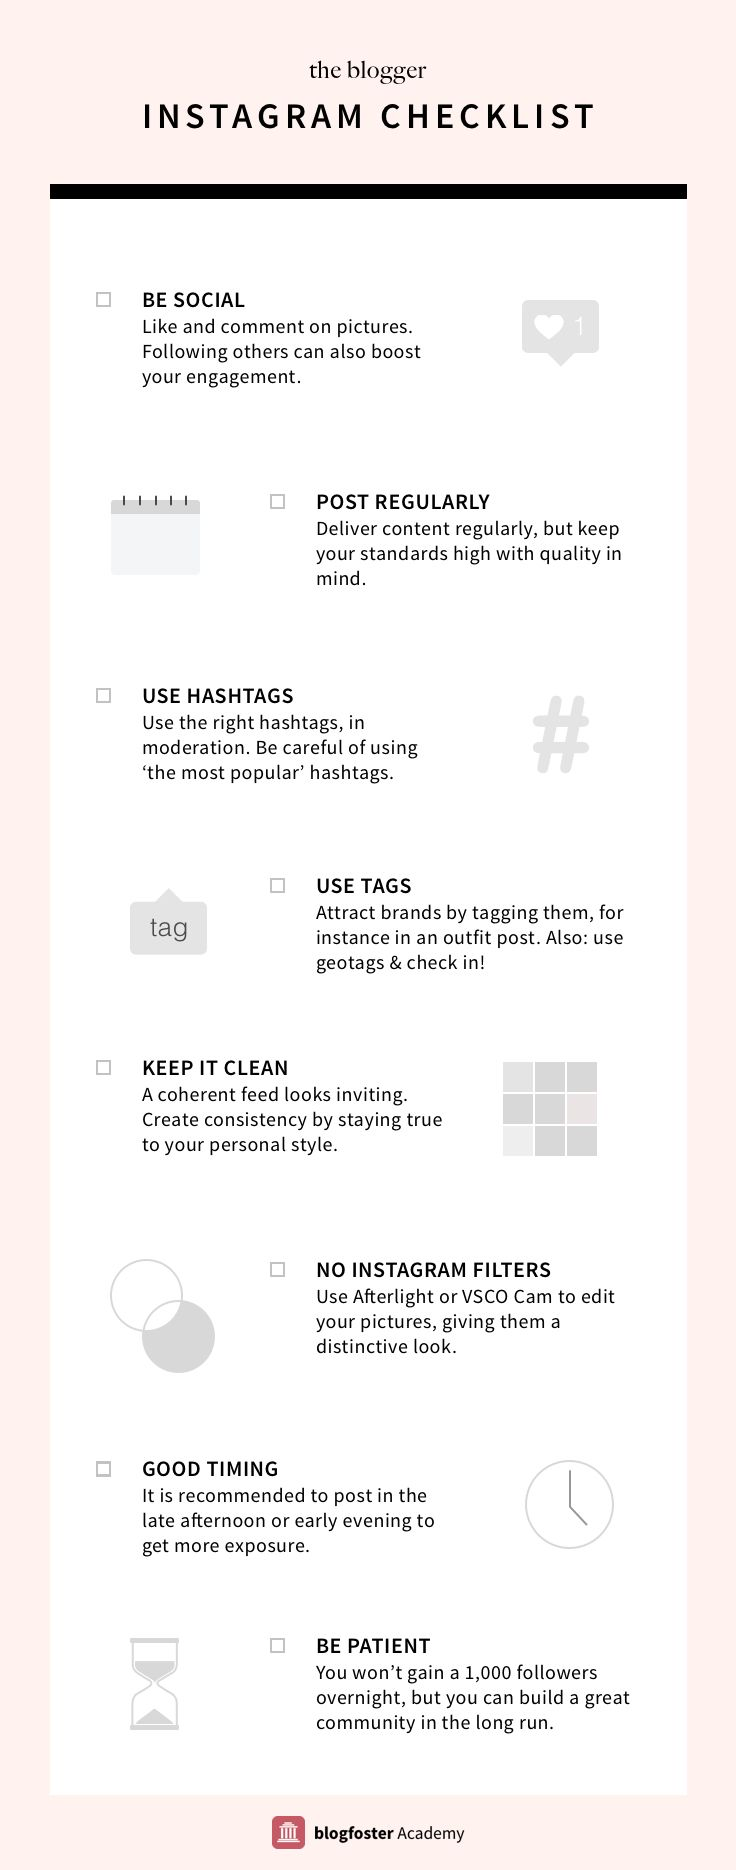 how to use hash tags to increase instagram